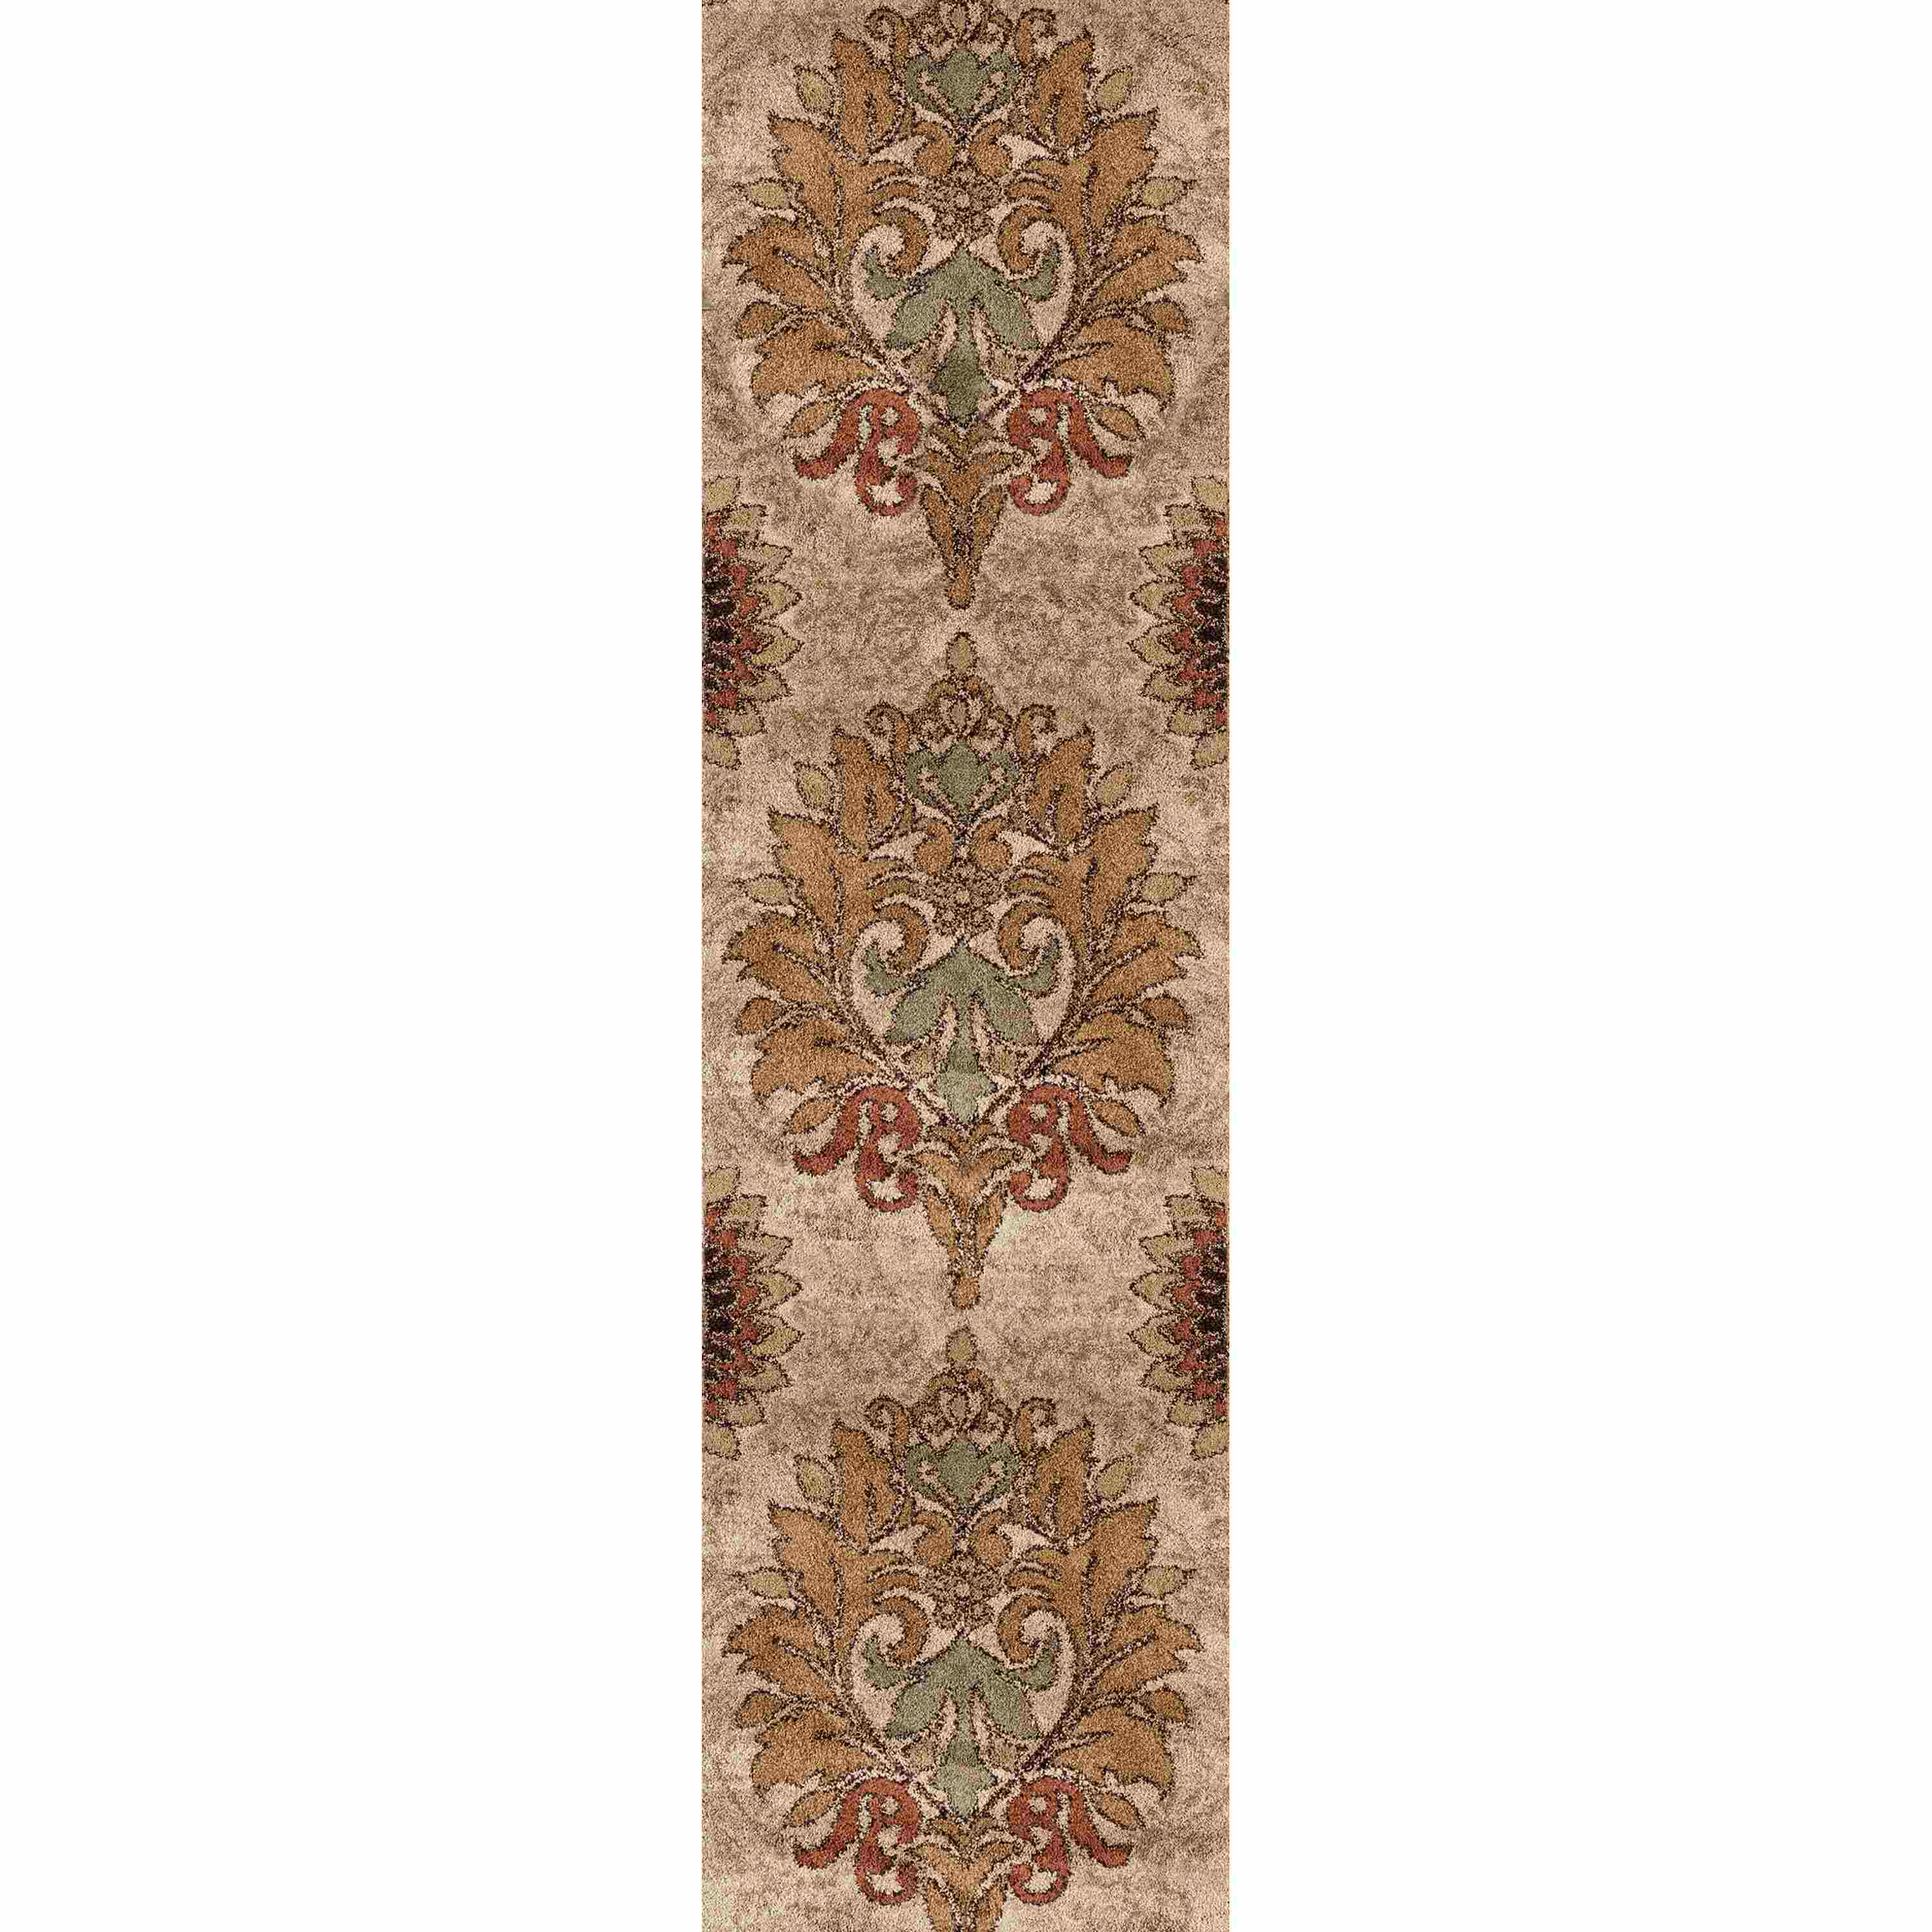 Orian Rugs Plush Damask Jacqueline Bisque Runner